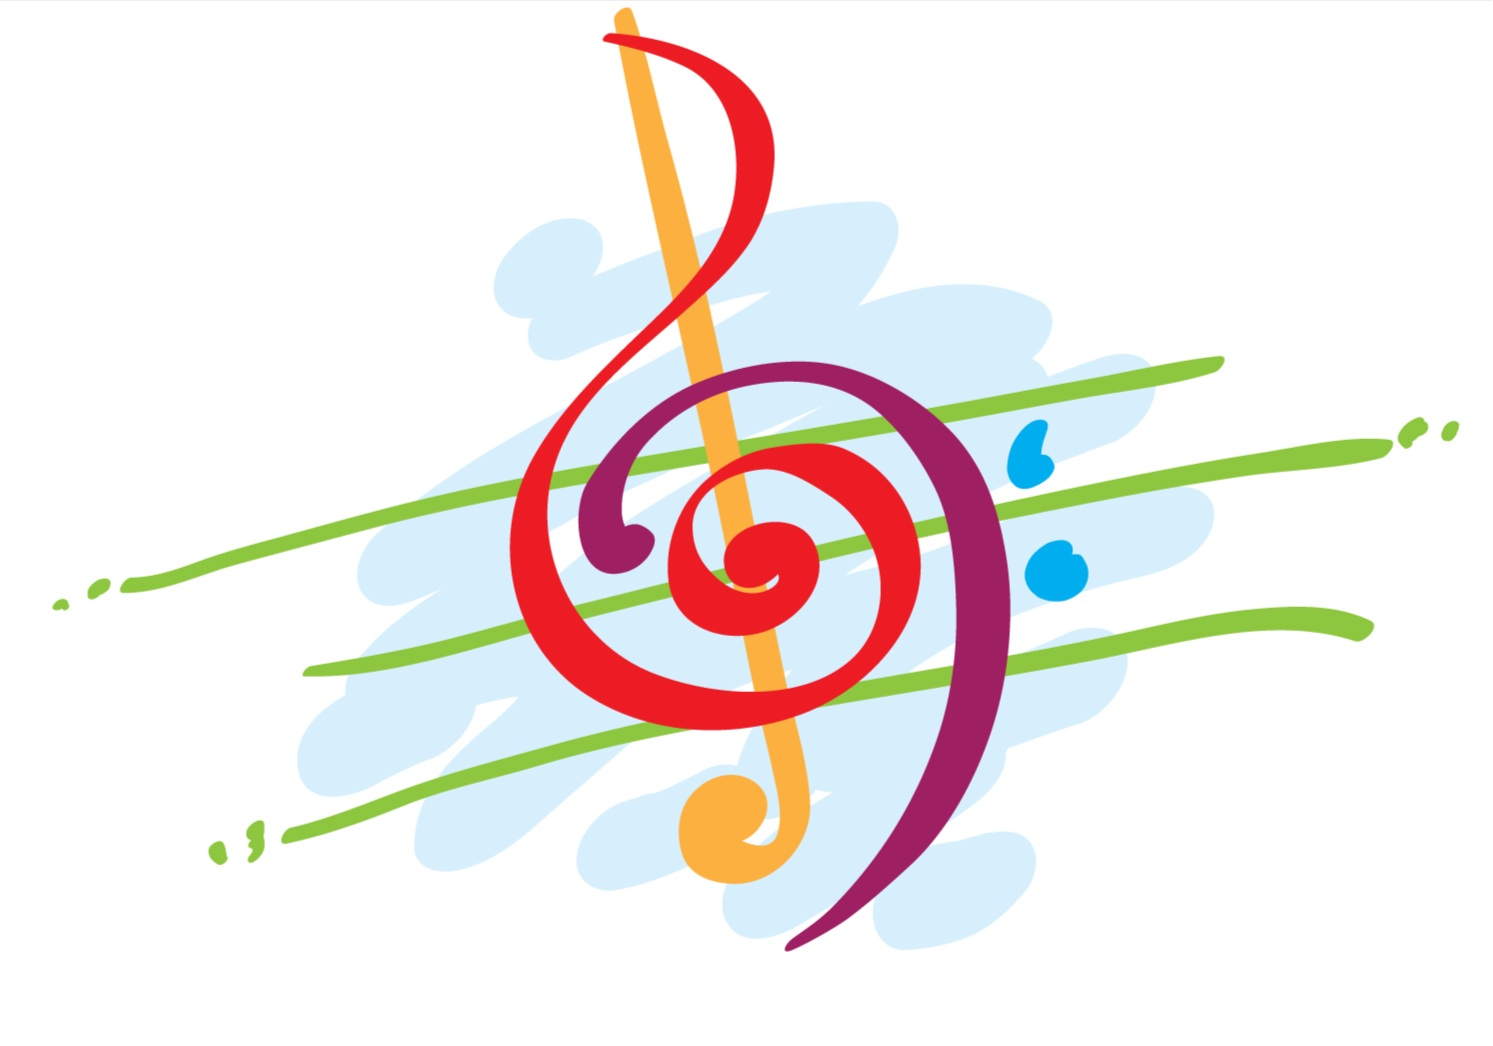 Colorful Music Notes Symbols Free Download Best Colorful Music